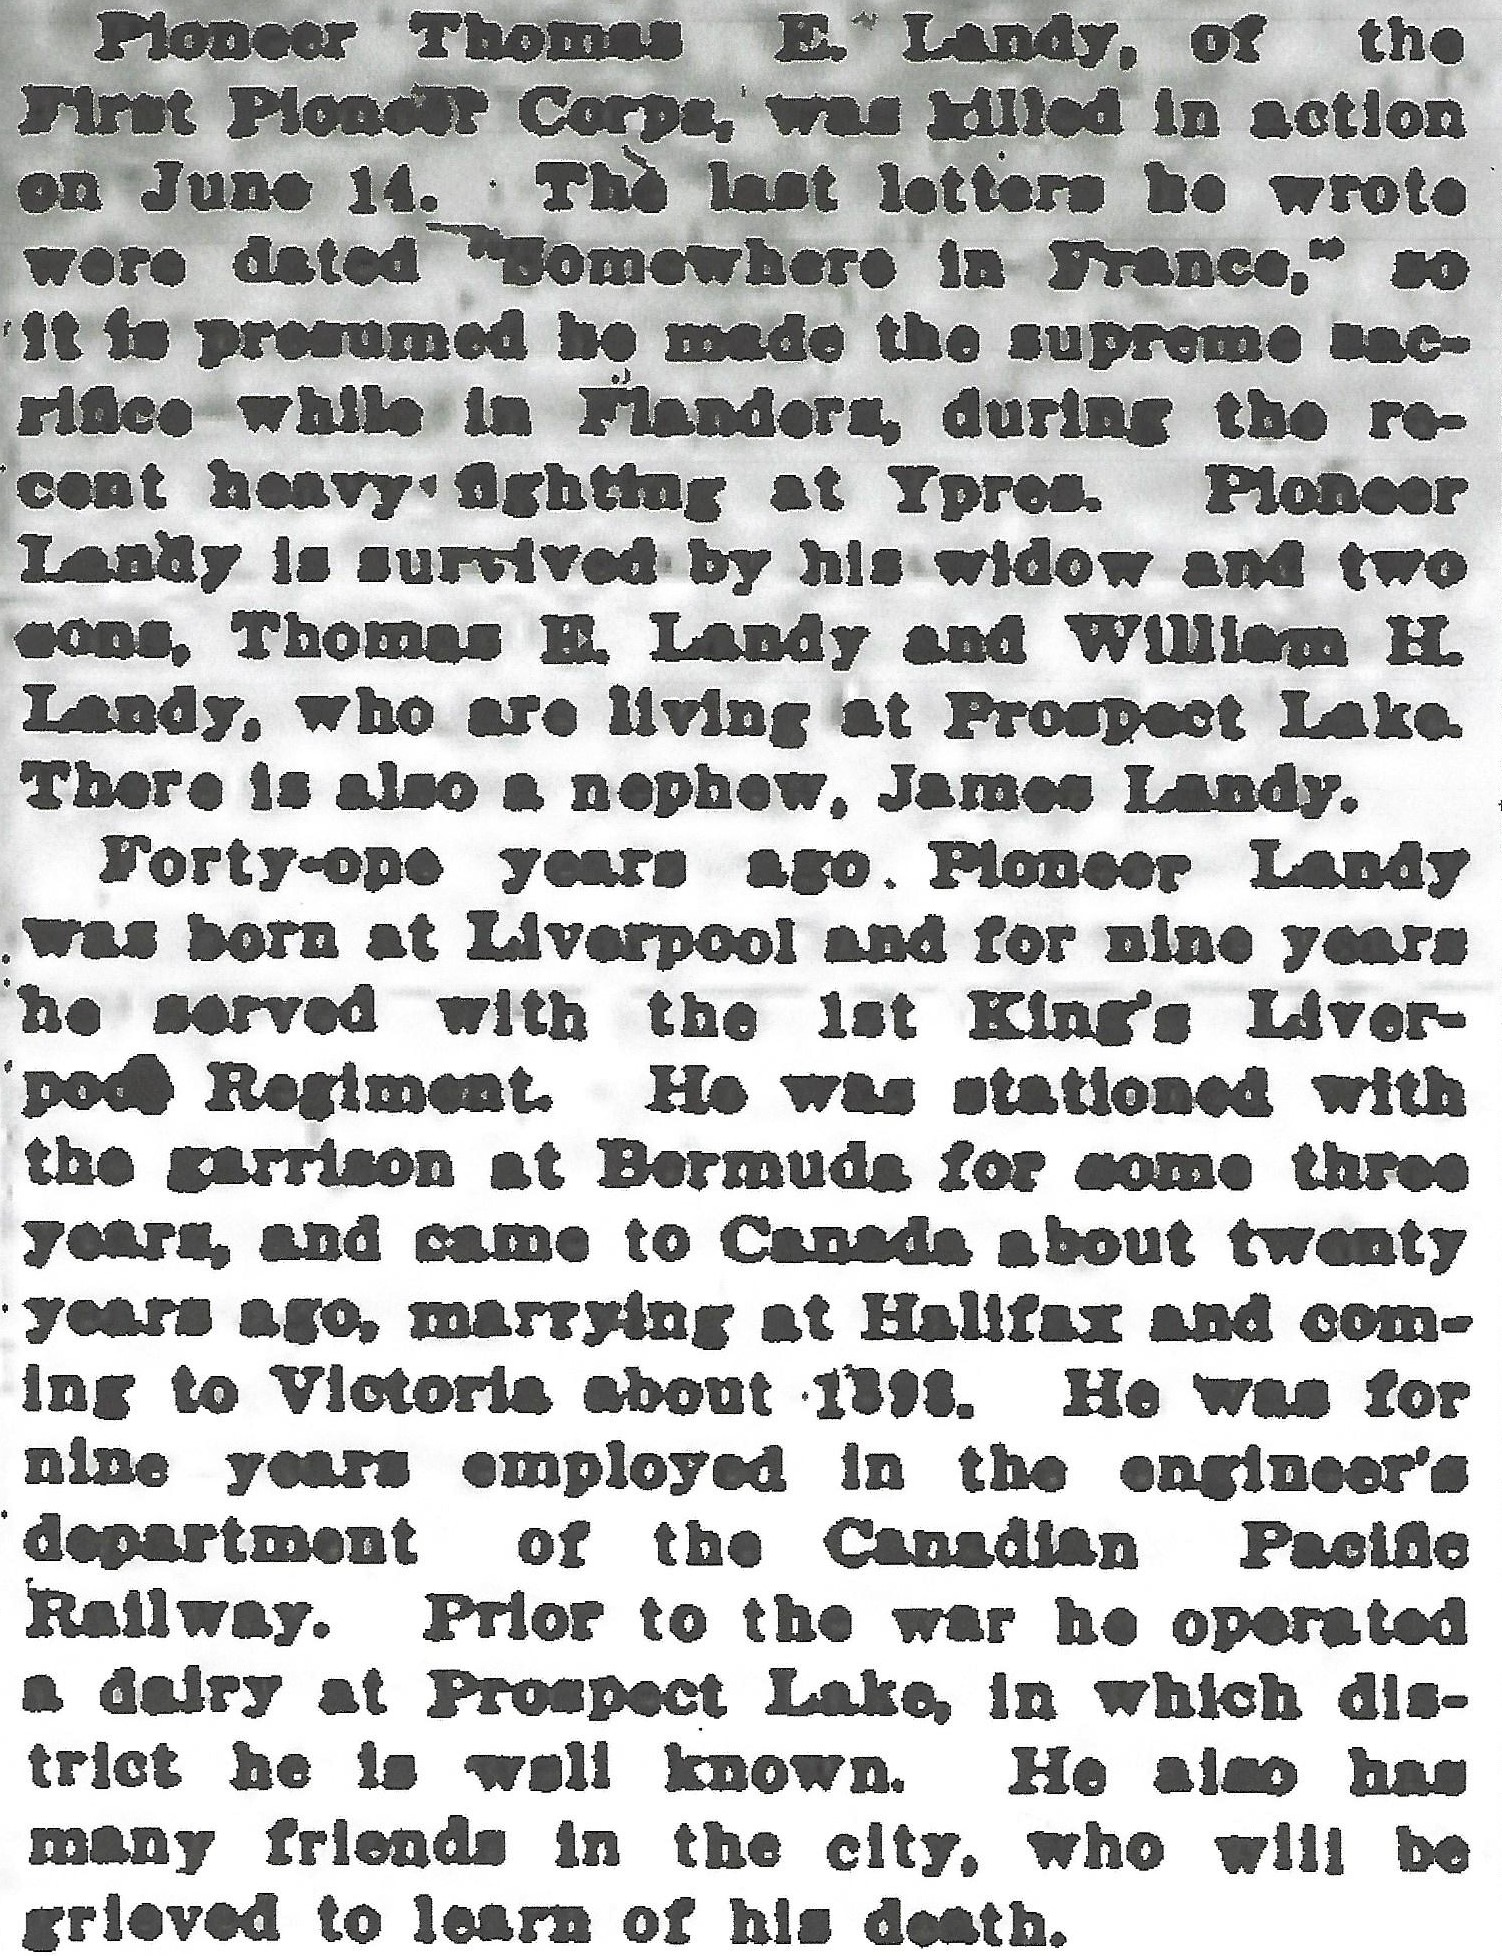 Newspaper clipping– From the Daily Colonist of June 23, 1916. Image taken from web address of https://archive.org/stream/dailycolonist58y167uvic#mode/1up.